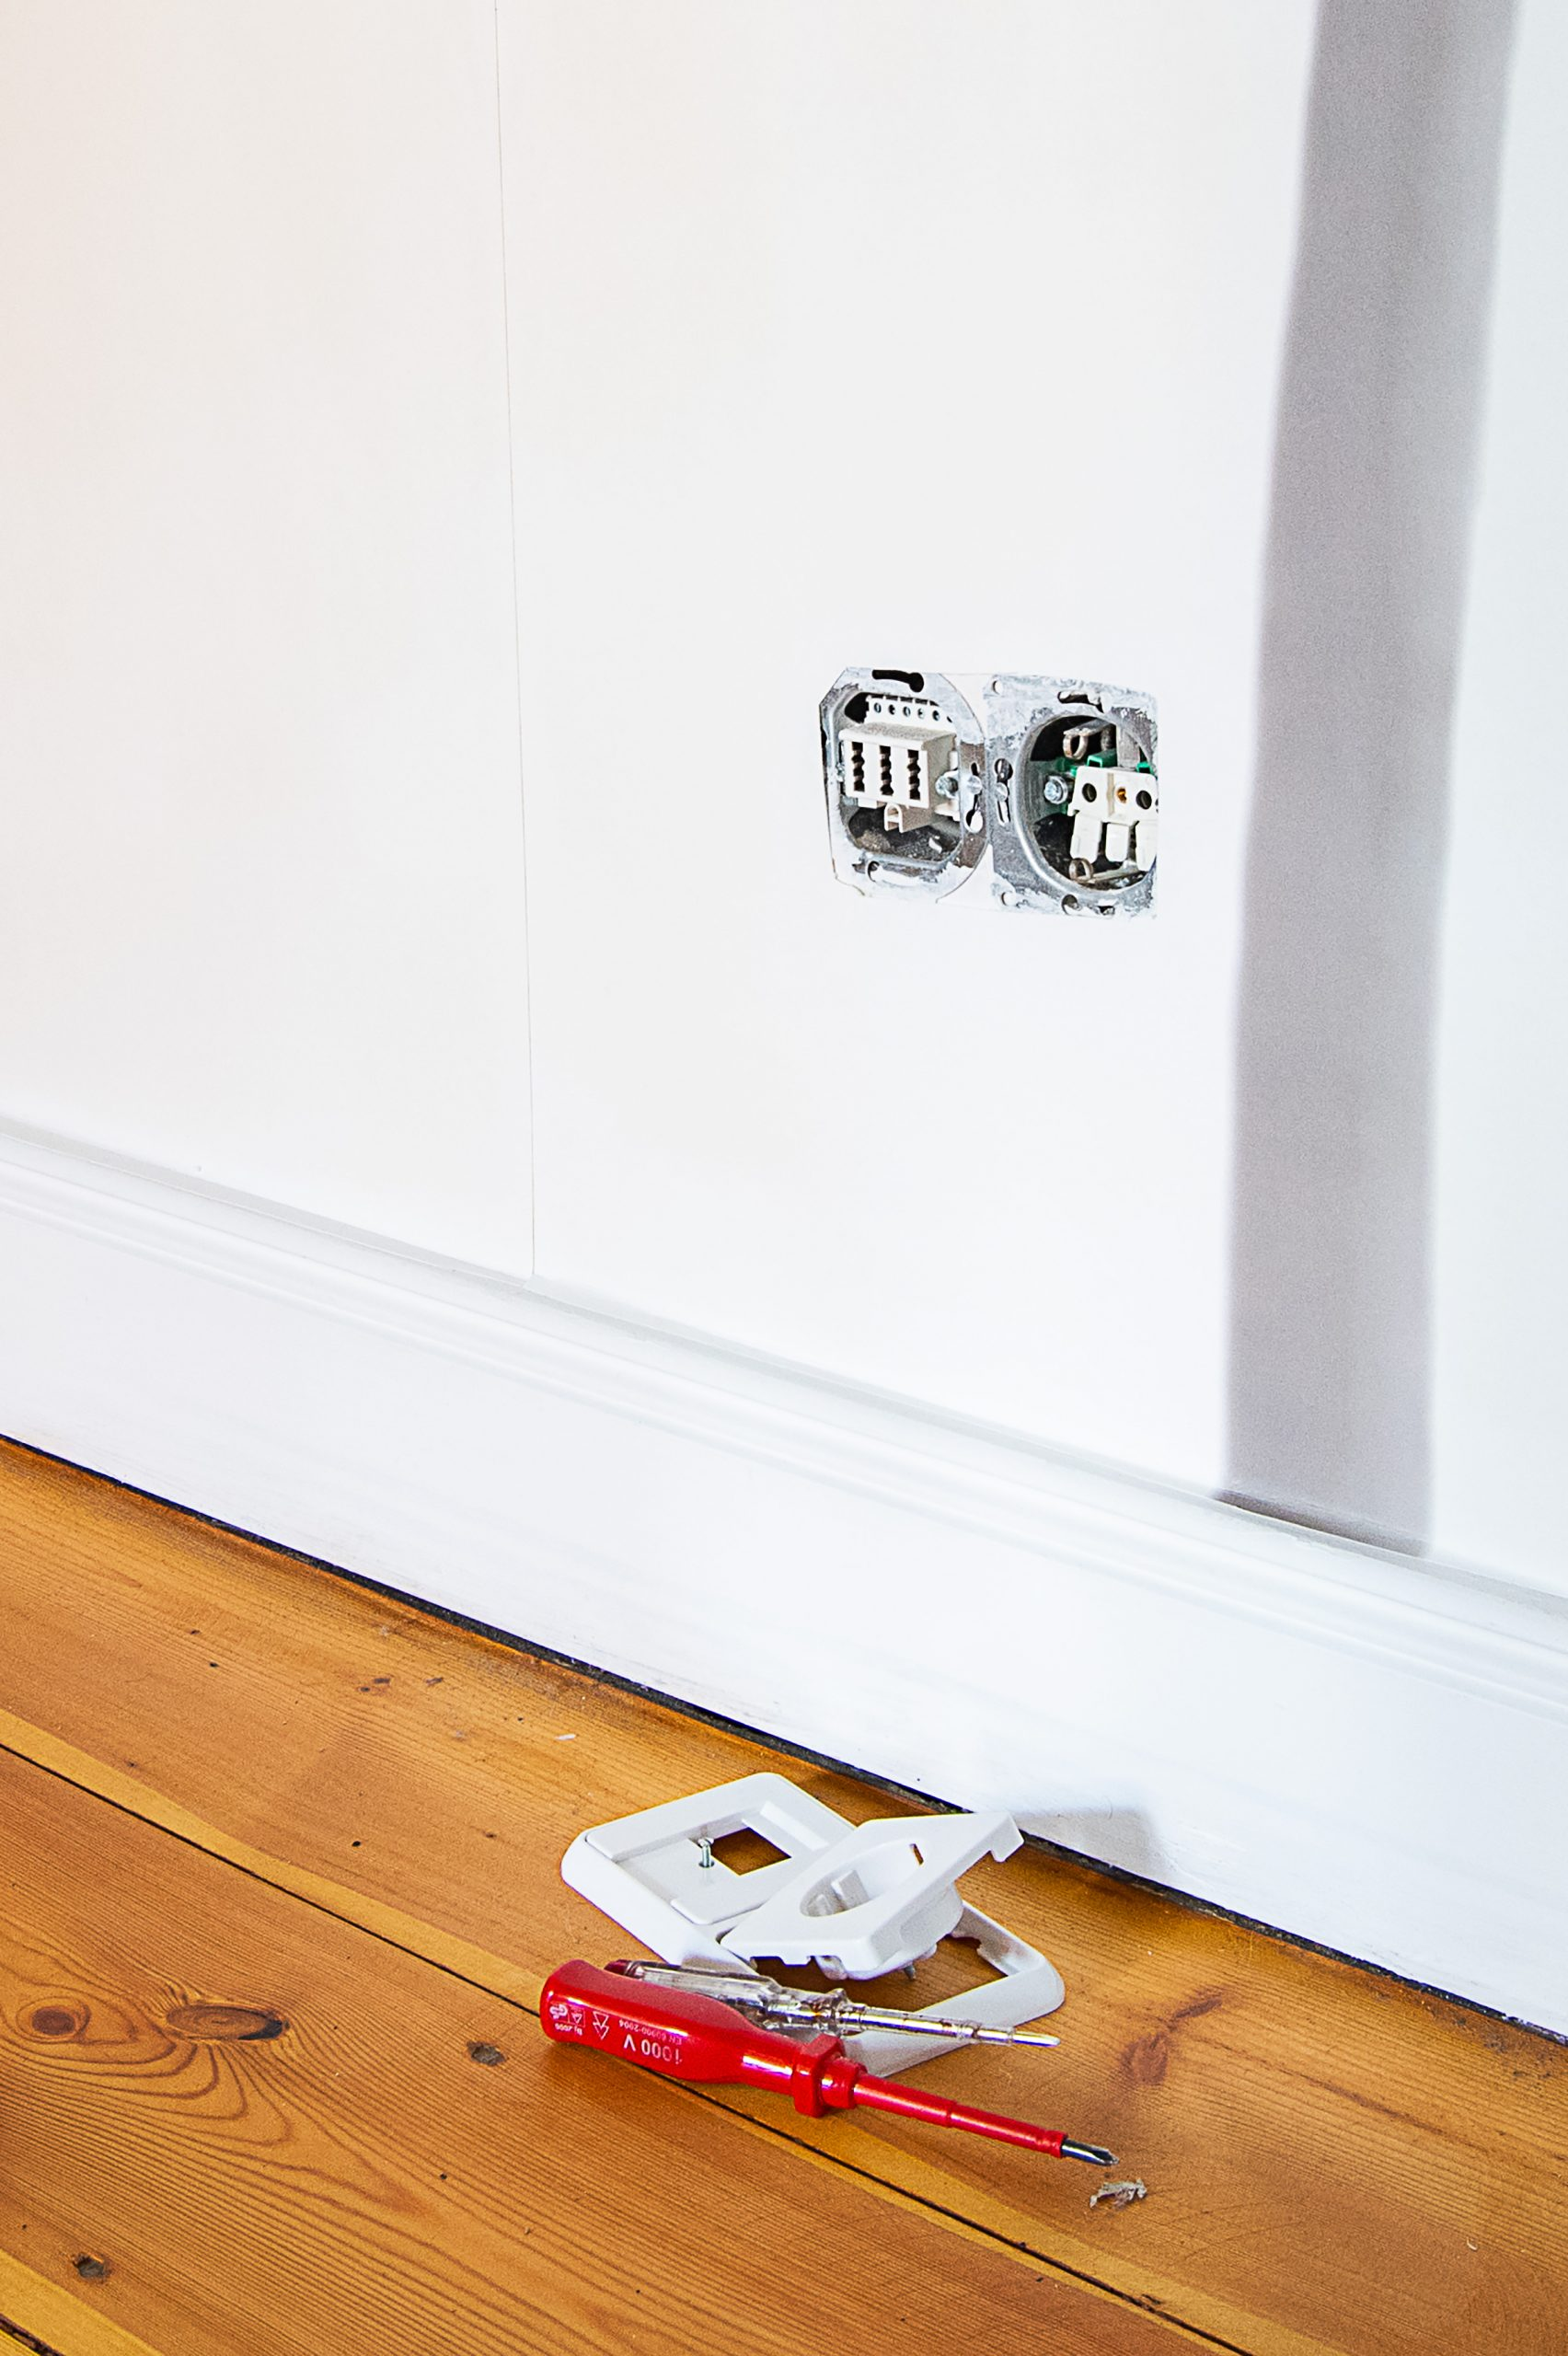 Wallpapering around a socket | Little House On The Corner